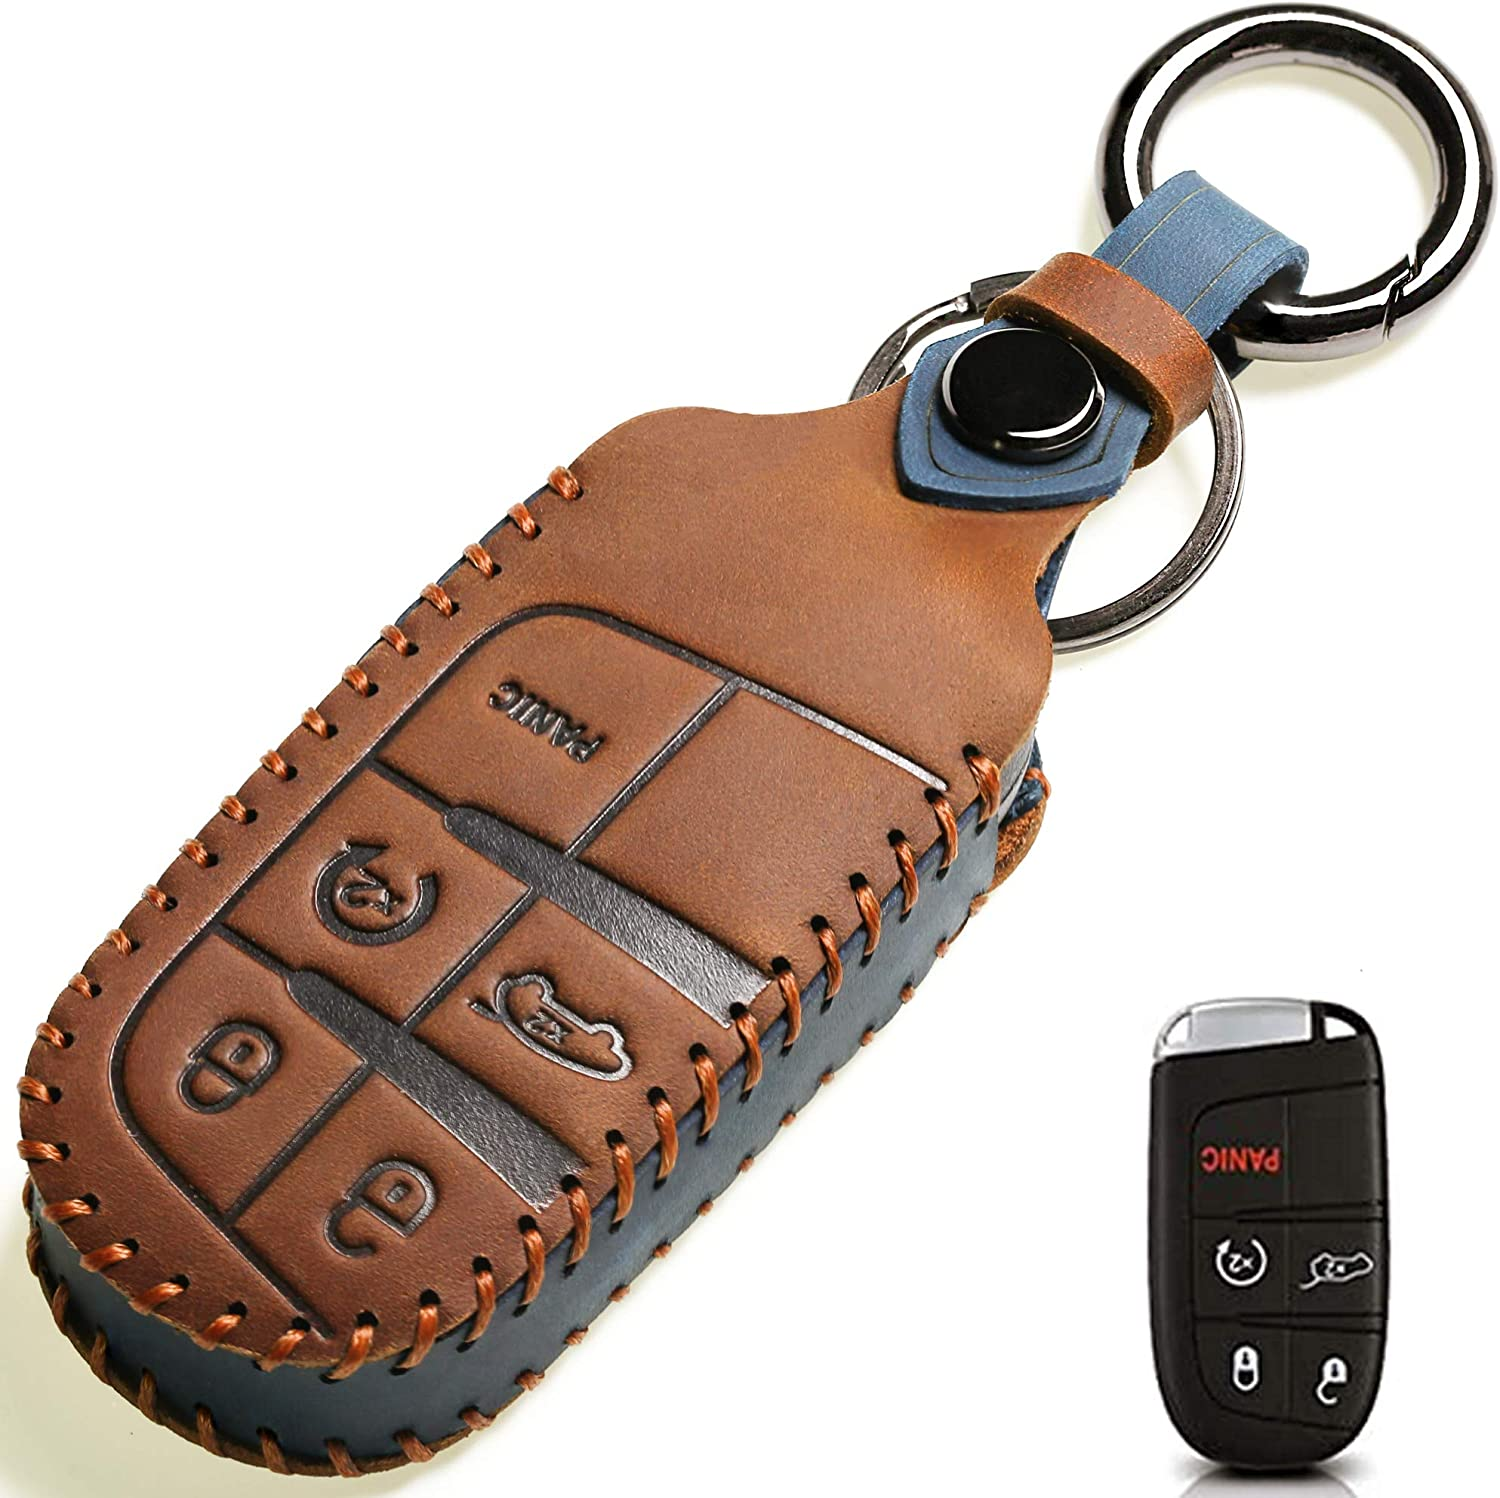 Leather Car Key Fob Cover, Suit for Keyless Remote Control for Jeep Grand Cherokee Dodge Challenger Charger Dart Durango Journey Chrysler 200 300 Fiat etc (A Style, Brown) …